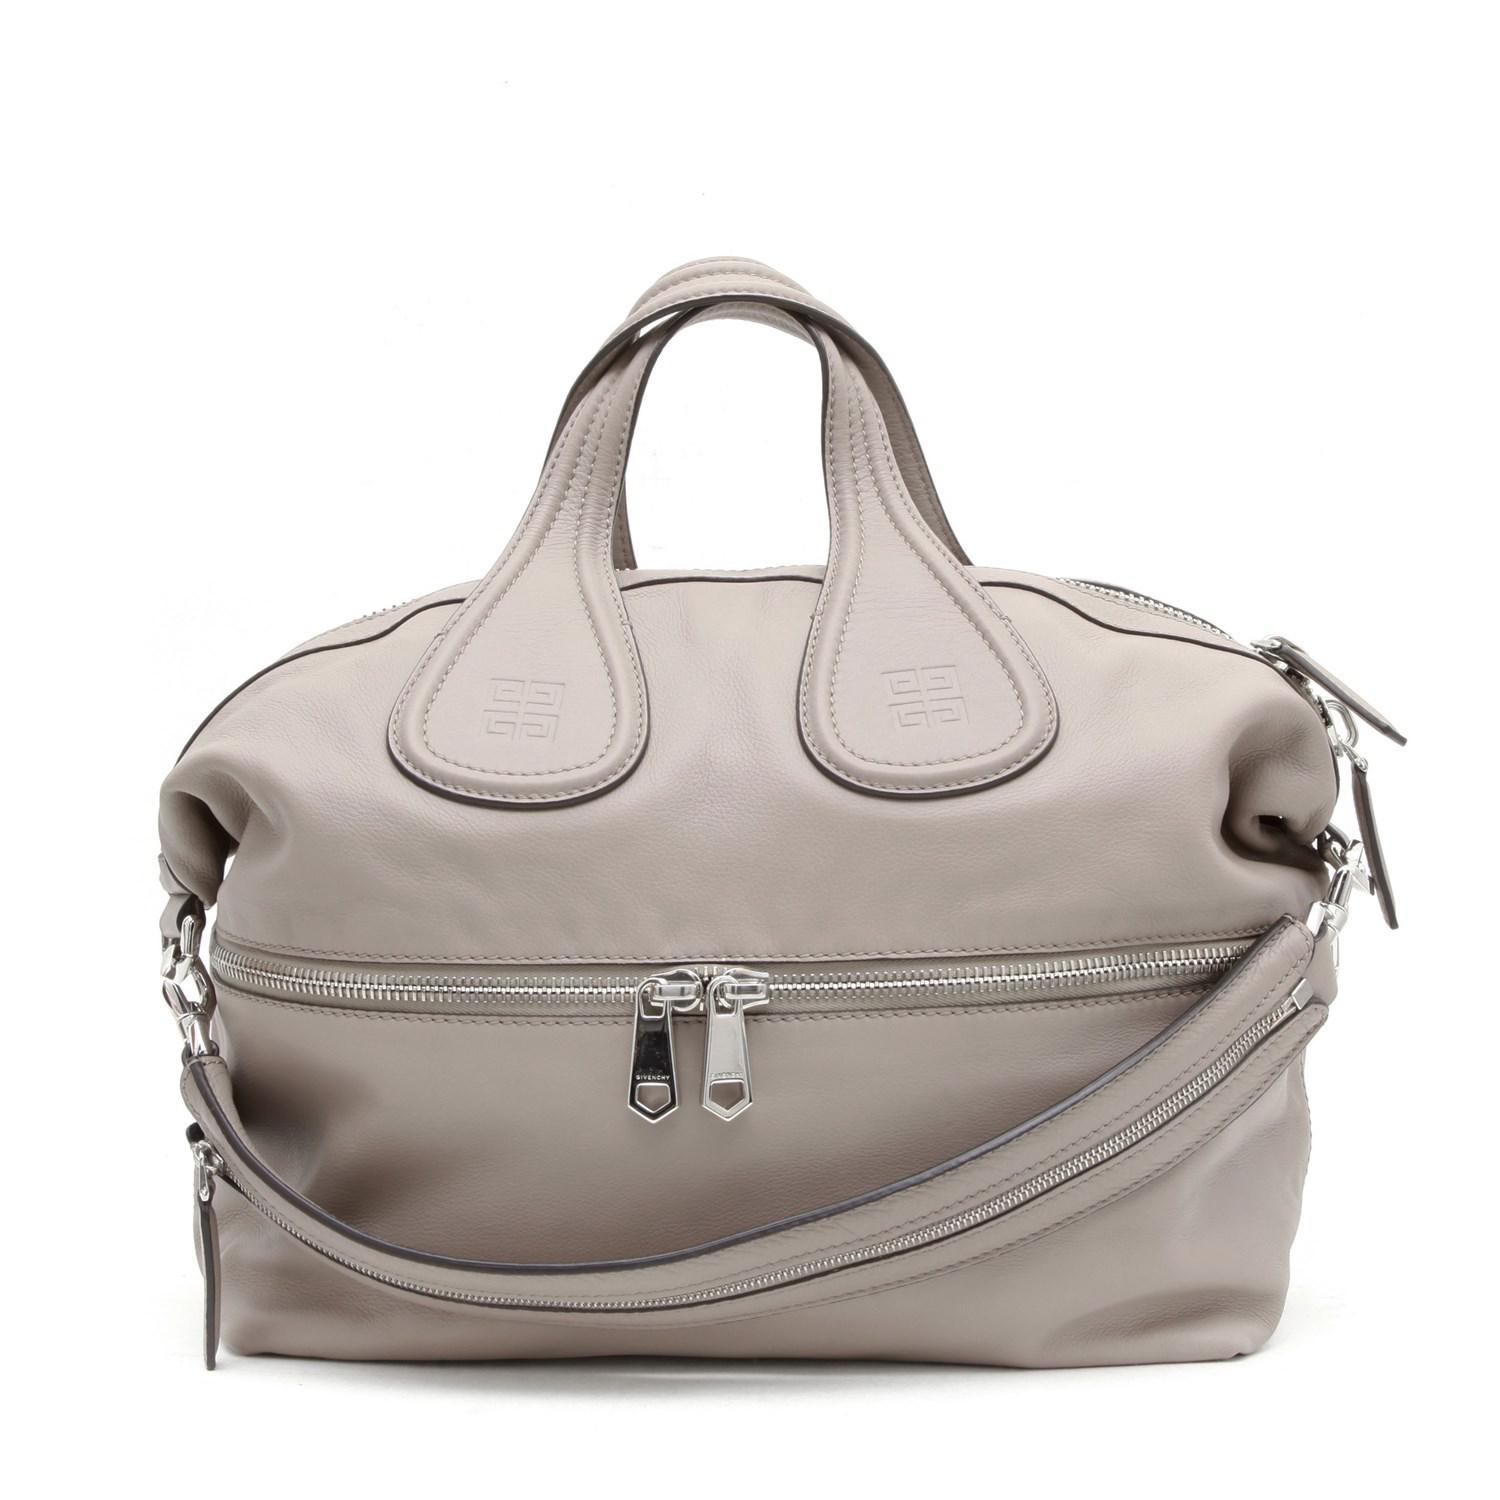 Lyst - Givenchy Nightingale Bag Large Model In Pink Beige Leather in ... 75e6cf3809949